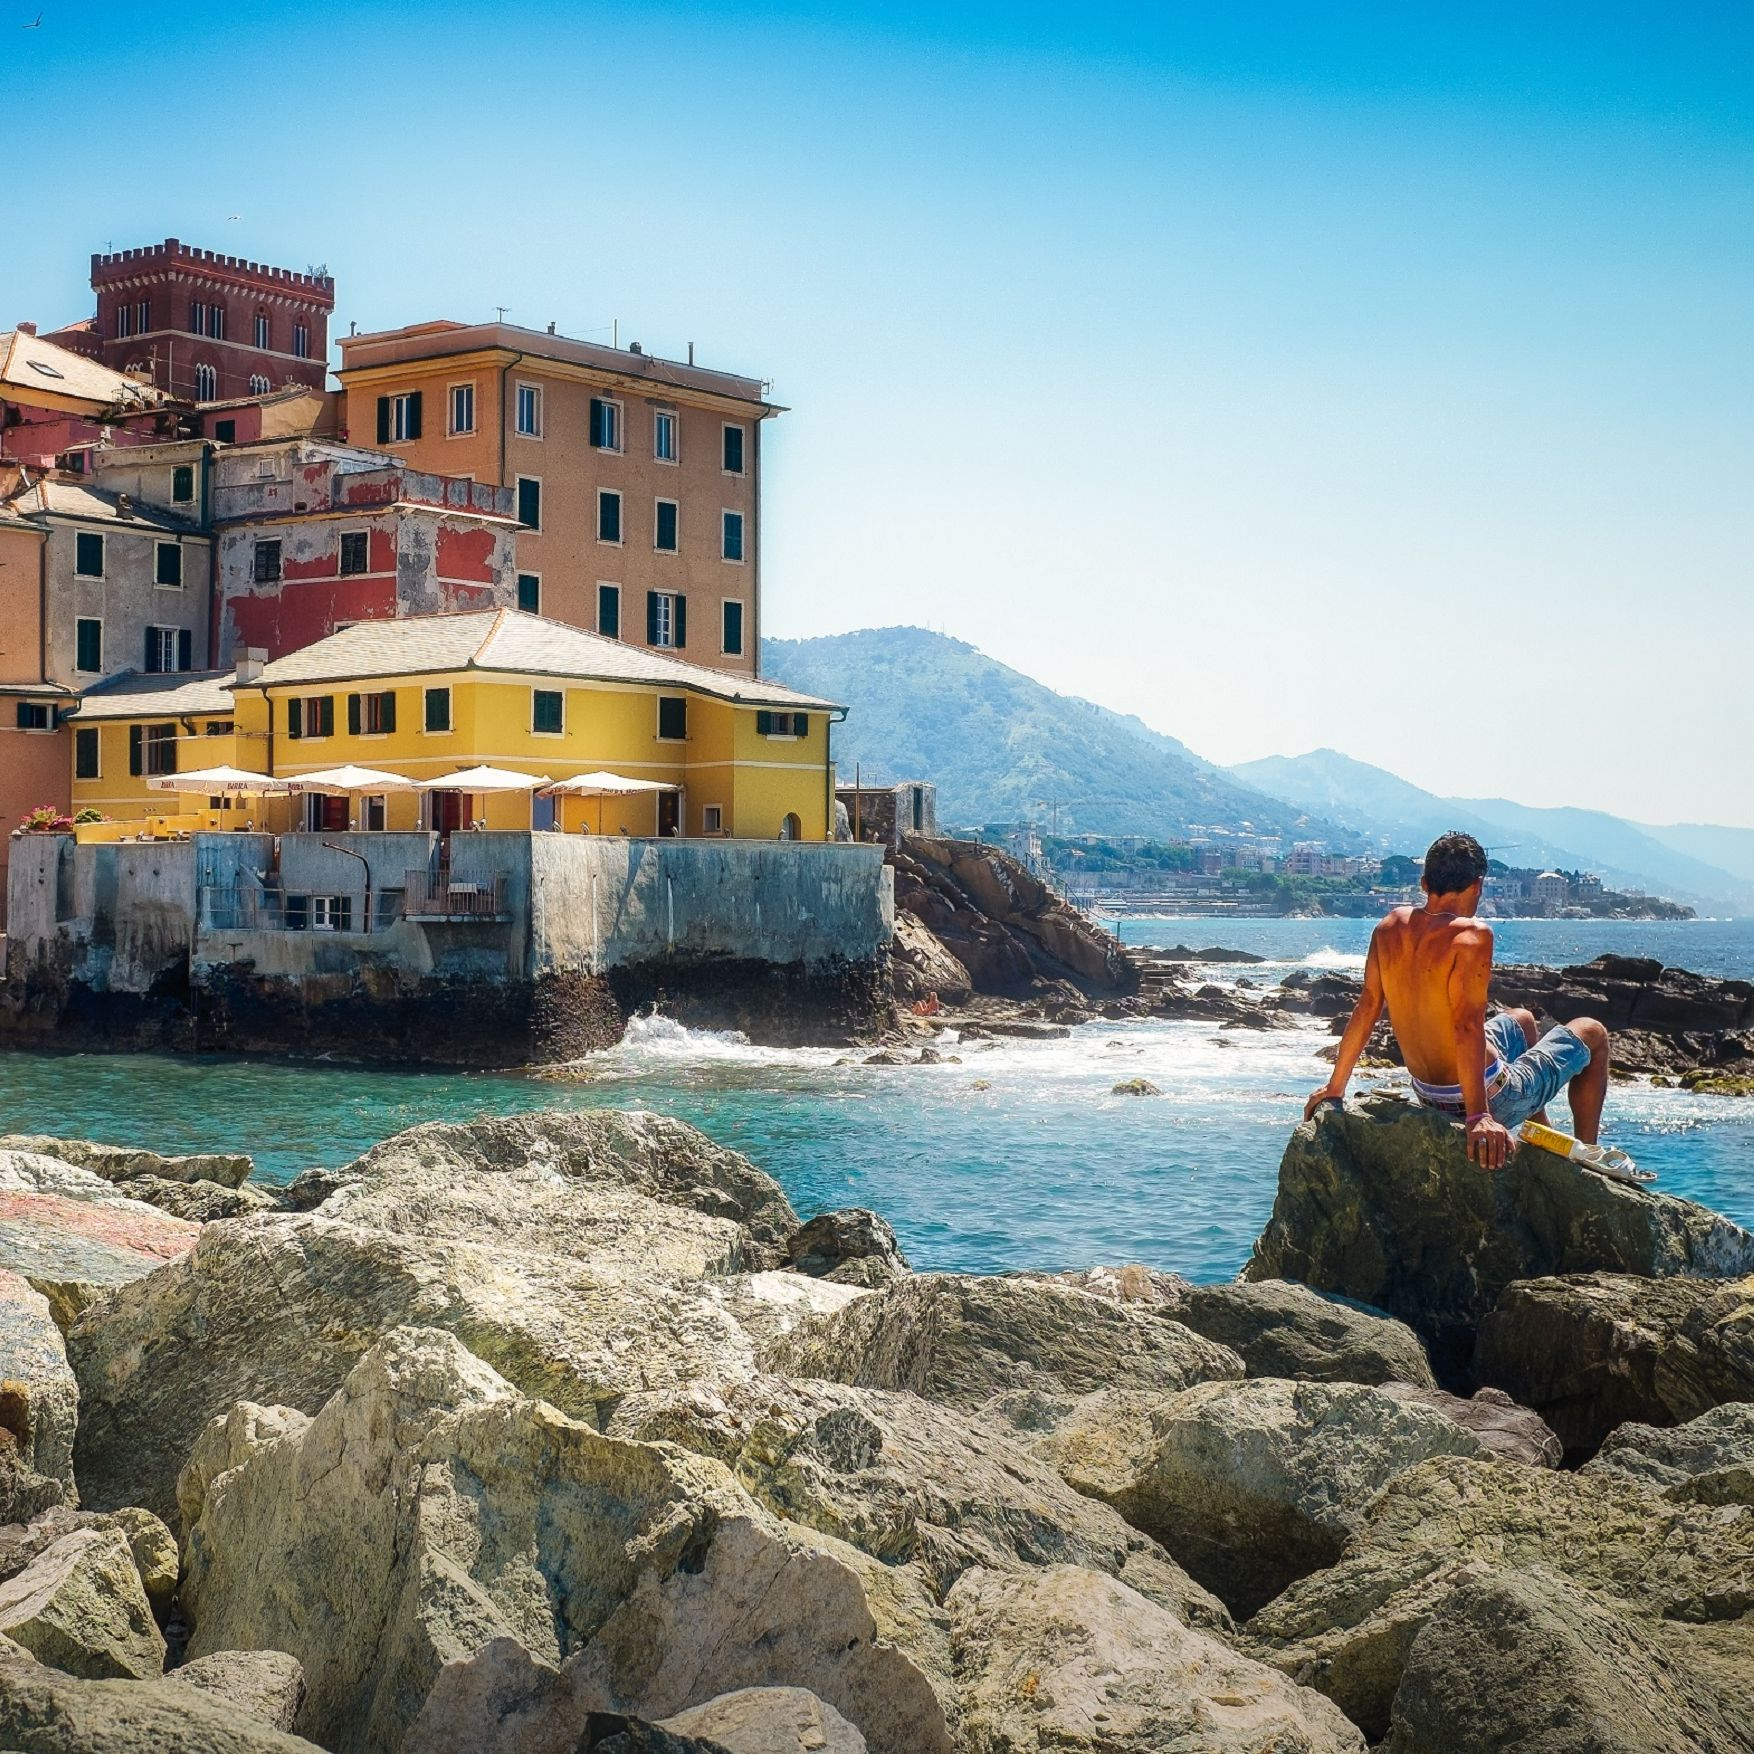 The sea and its beaches: Boccadasse - AdobeStock-Liguriadigitale